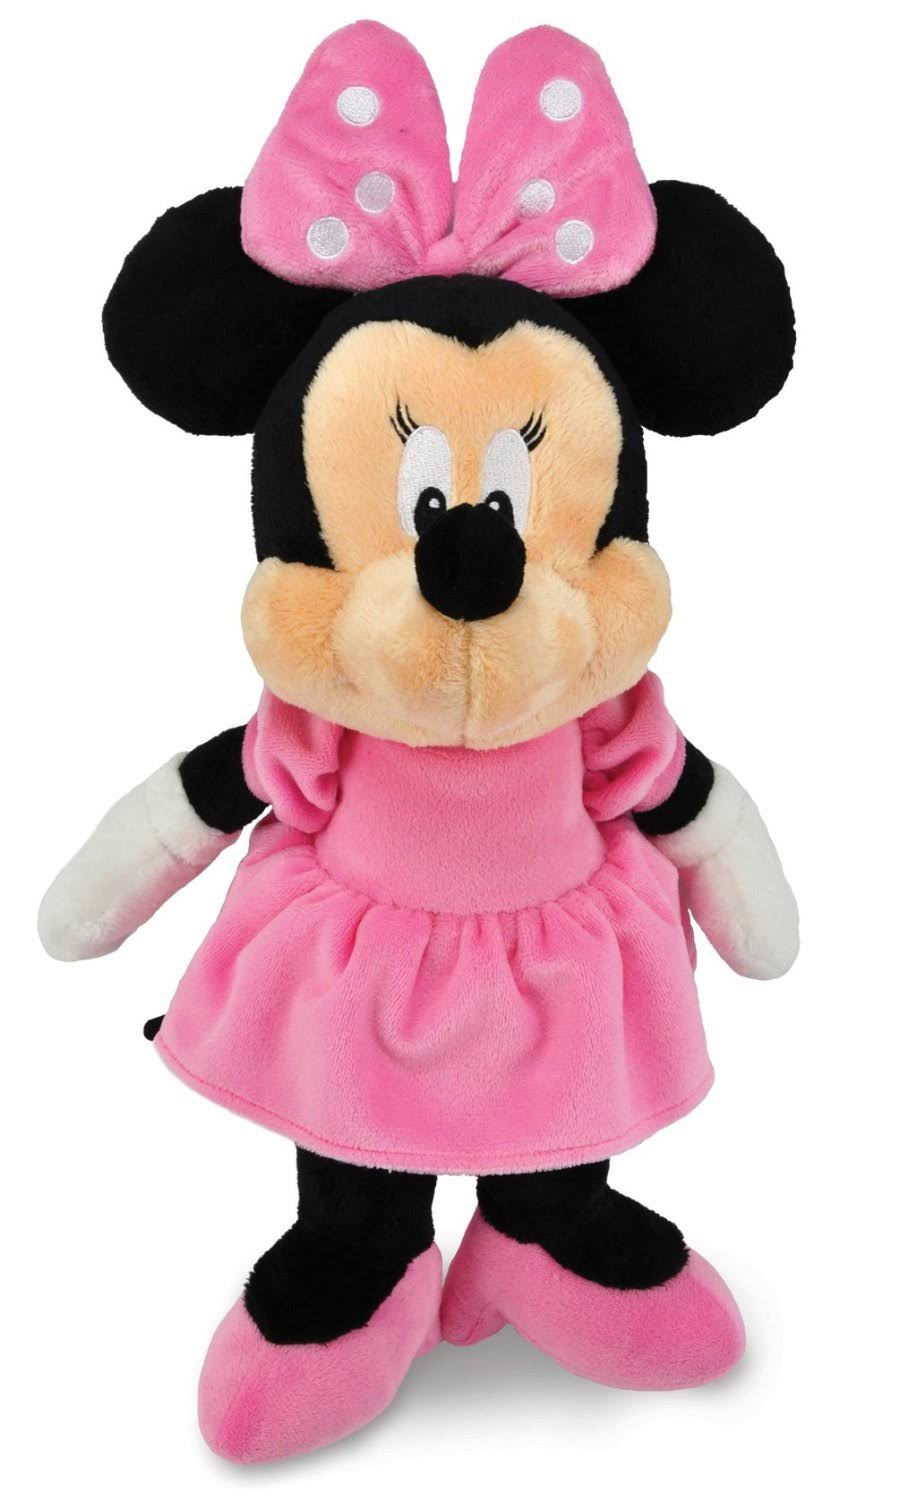 Kids Preferred Minnie Mouse Plush Toy - 15""